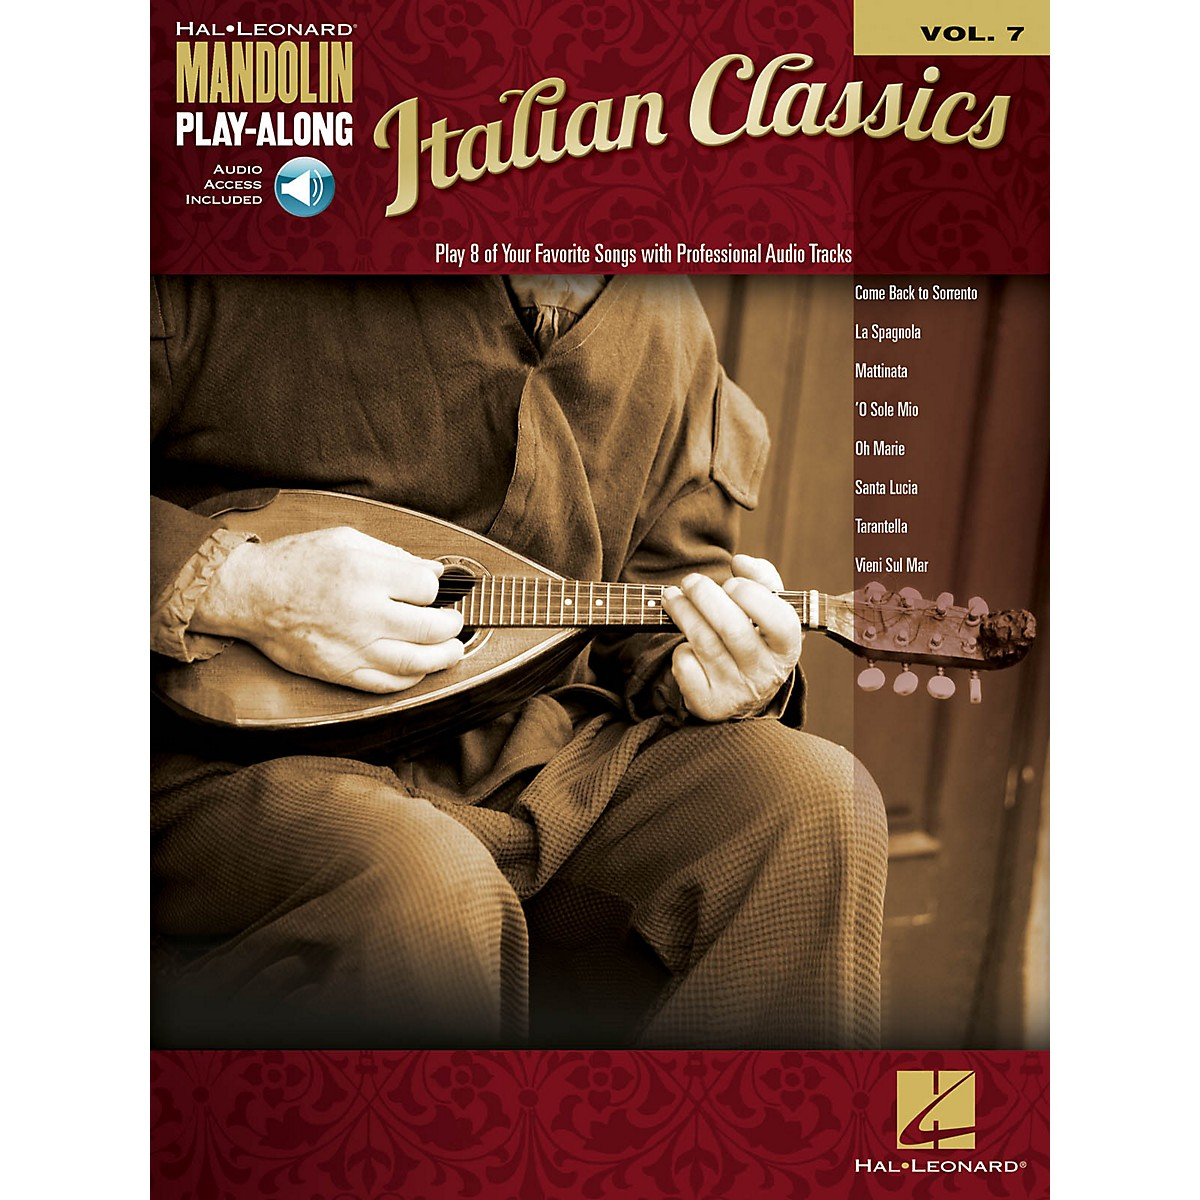 Hal Leonard Italian Classics (Mandolin Play-Along Volume 7) Mandolin Play-Along Series Softcover Audio Online